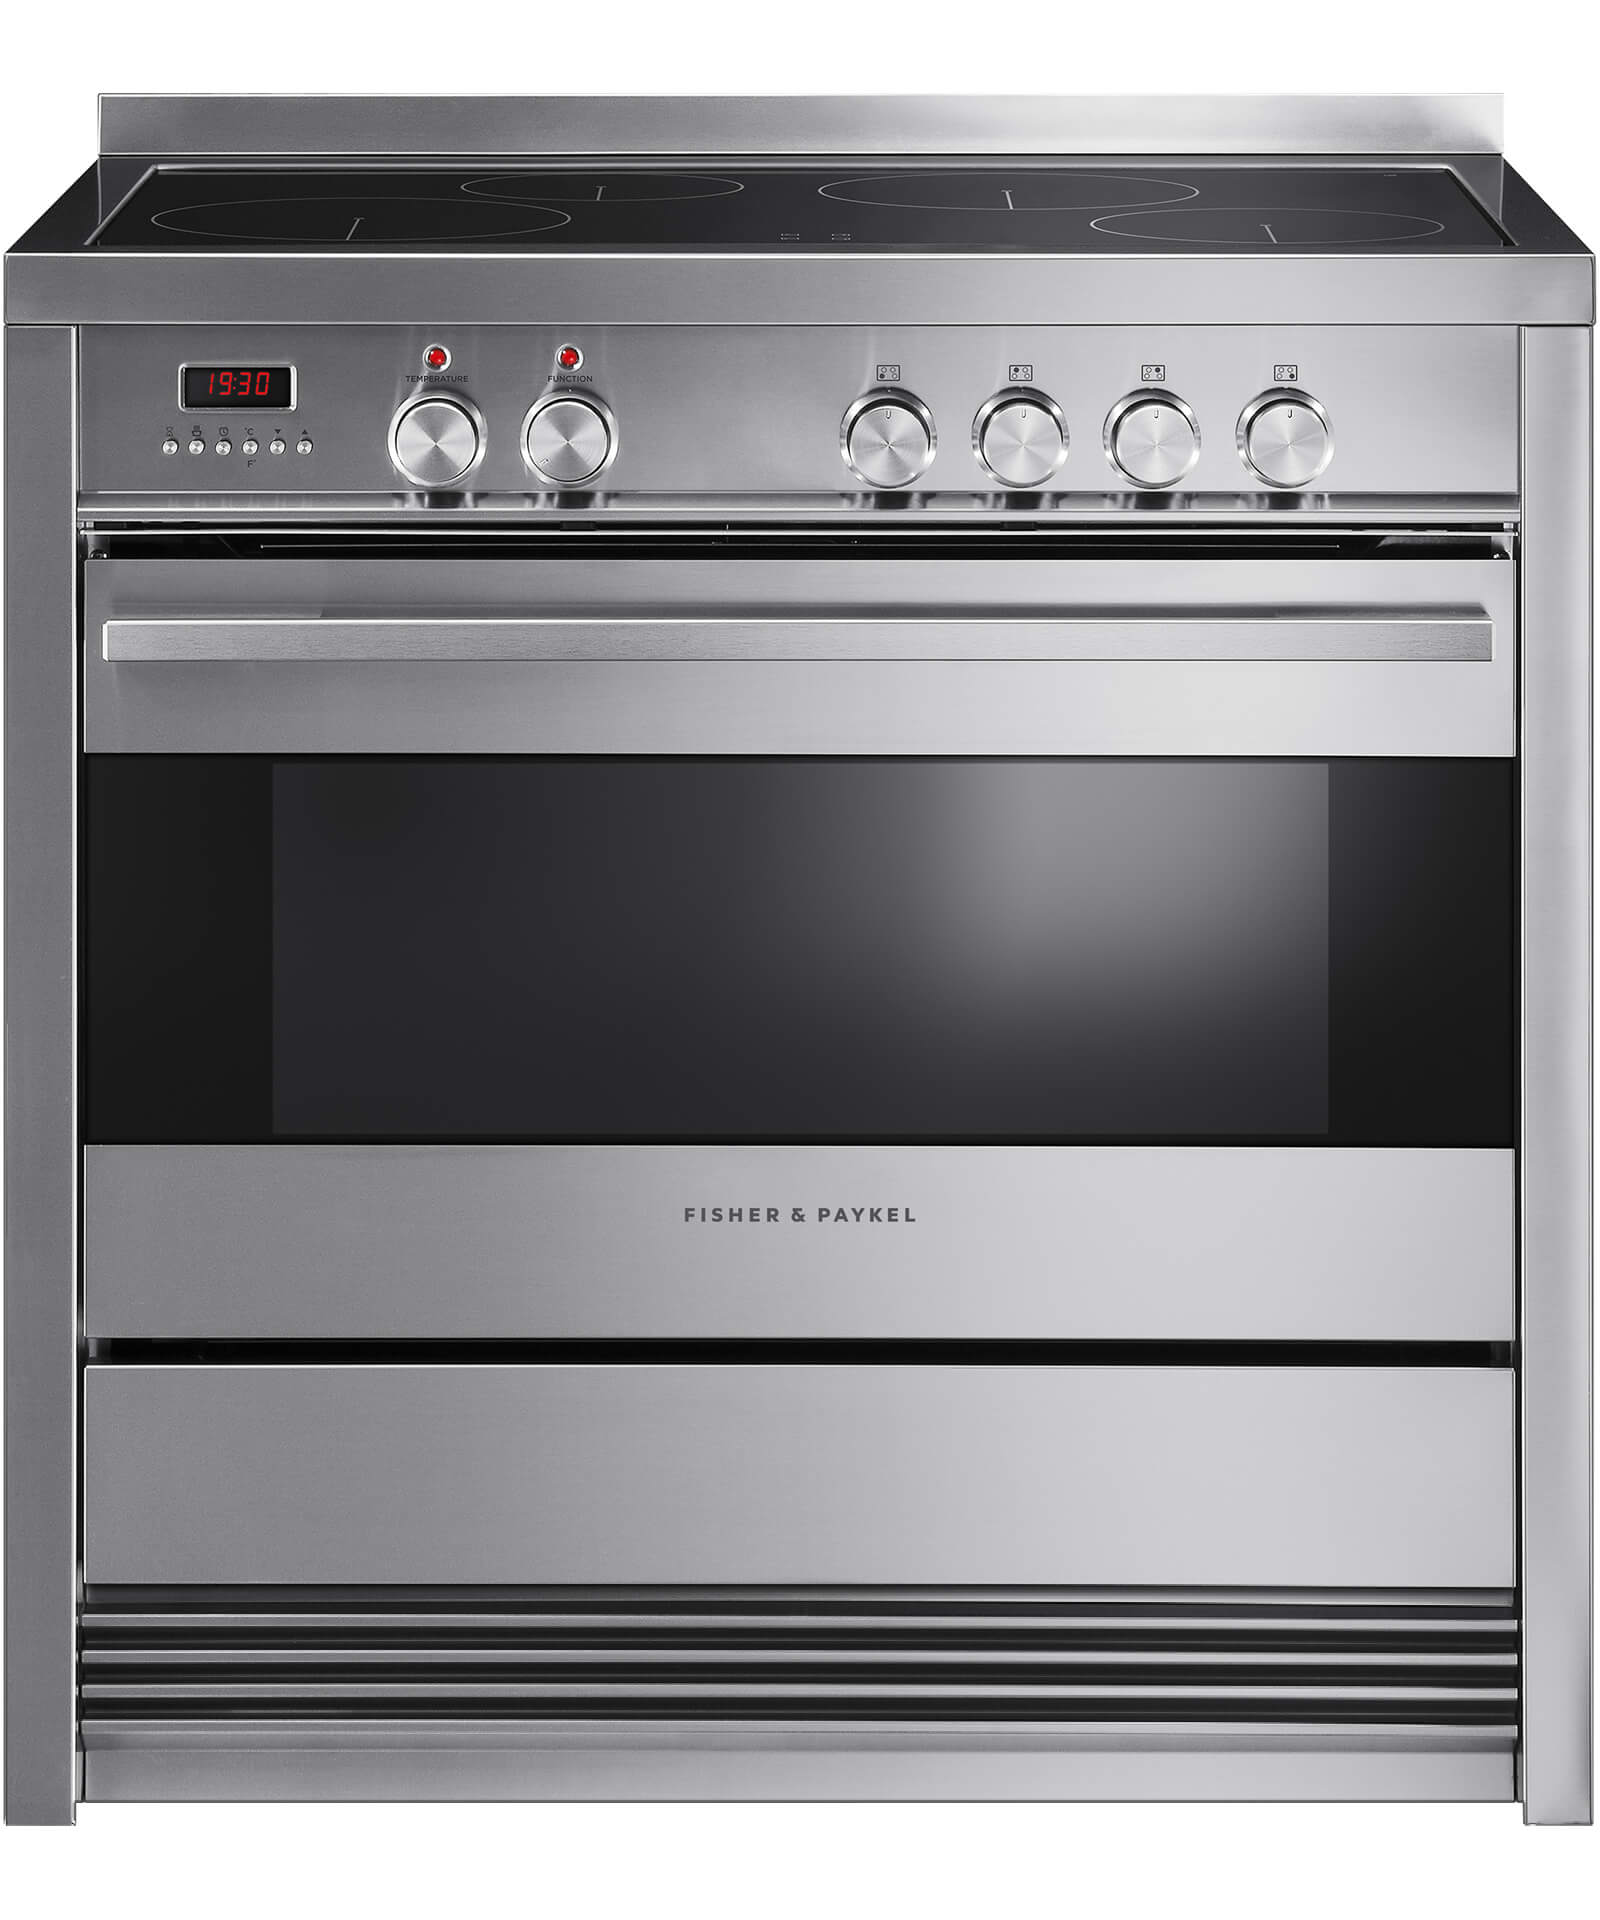 Best Induction Cookers ~ Or sdbsix fisher paykel cm freestanding induction